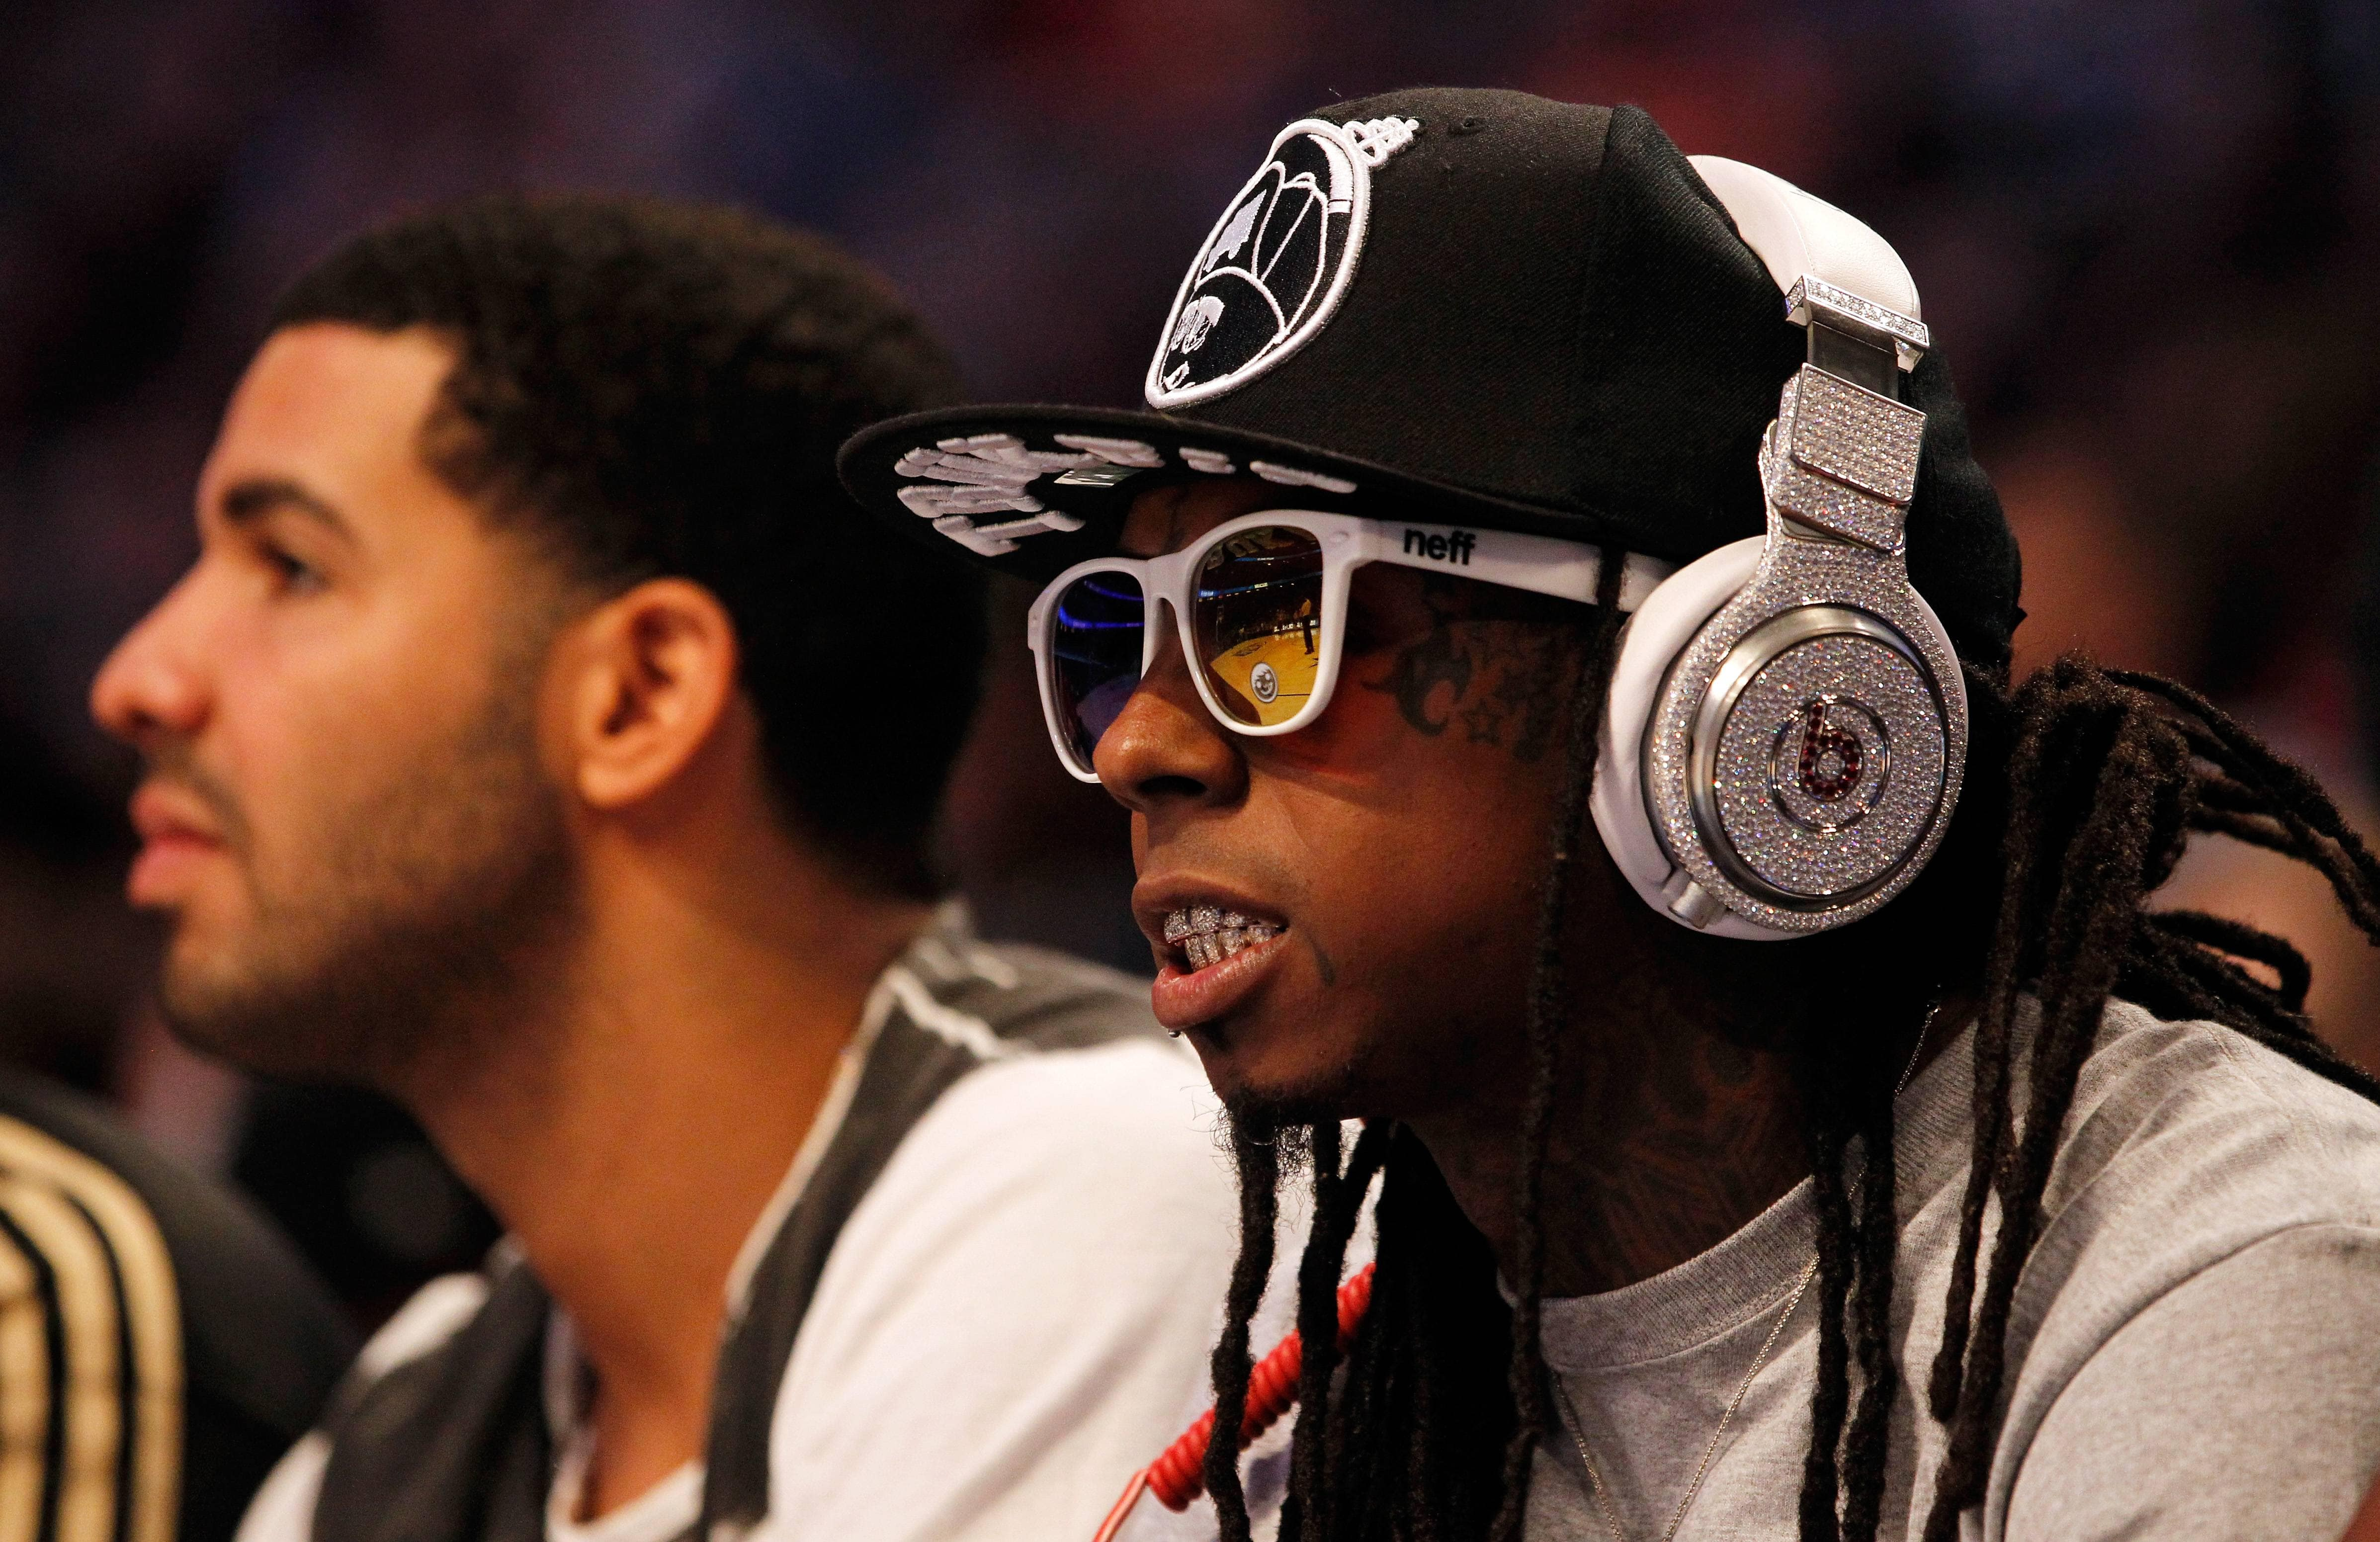 Picture of Lil Wayne wearing Beats by Dre